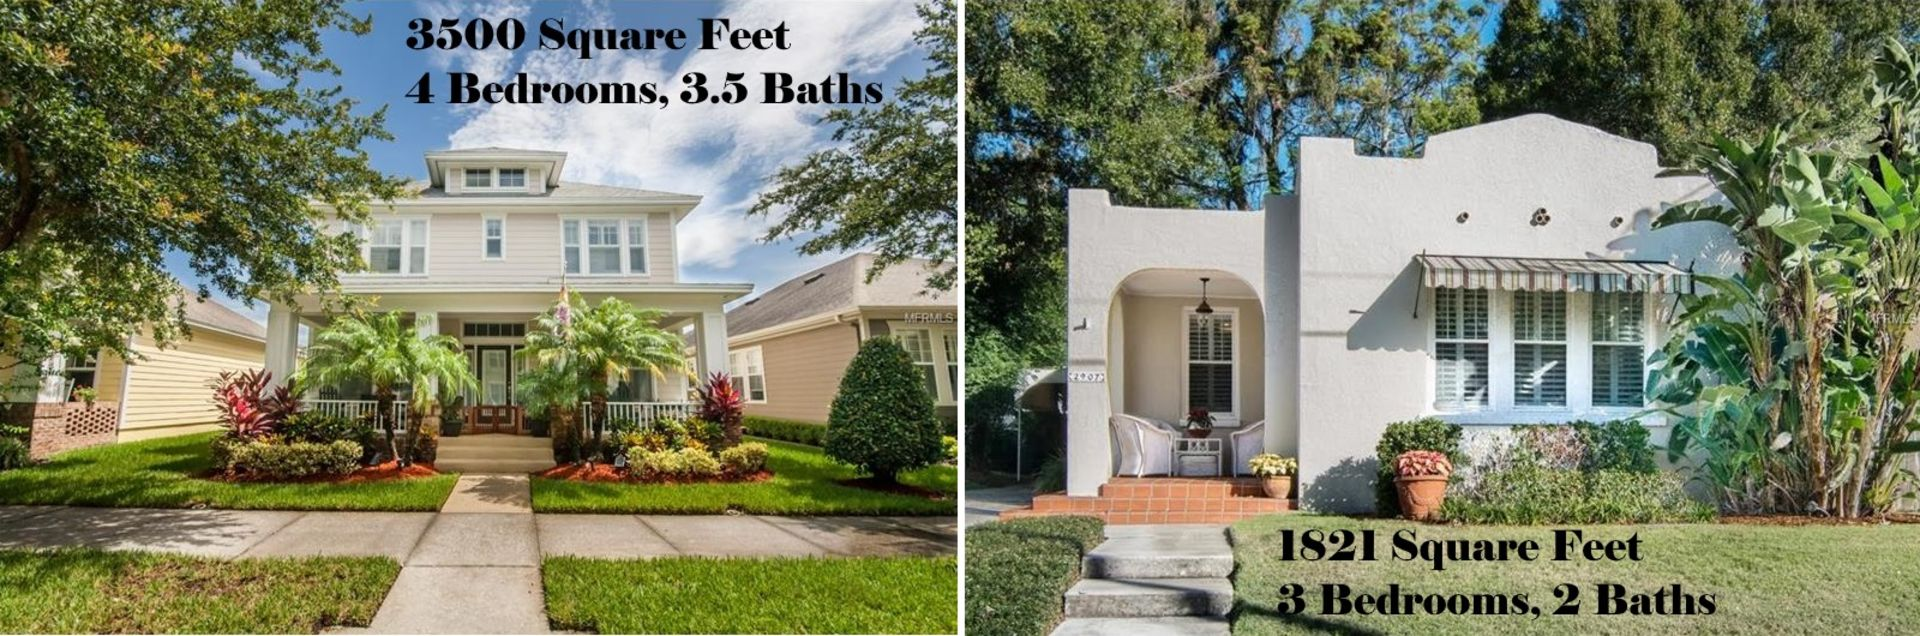 Which Tampa Home Sold For More Money?